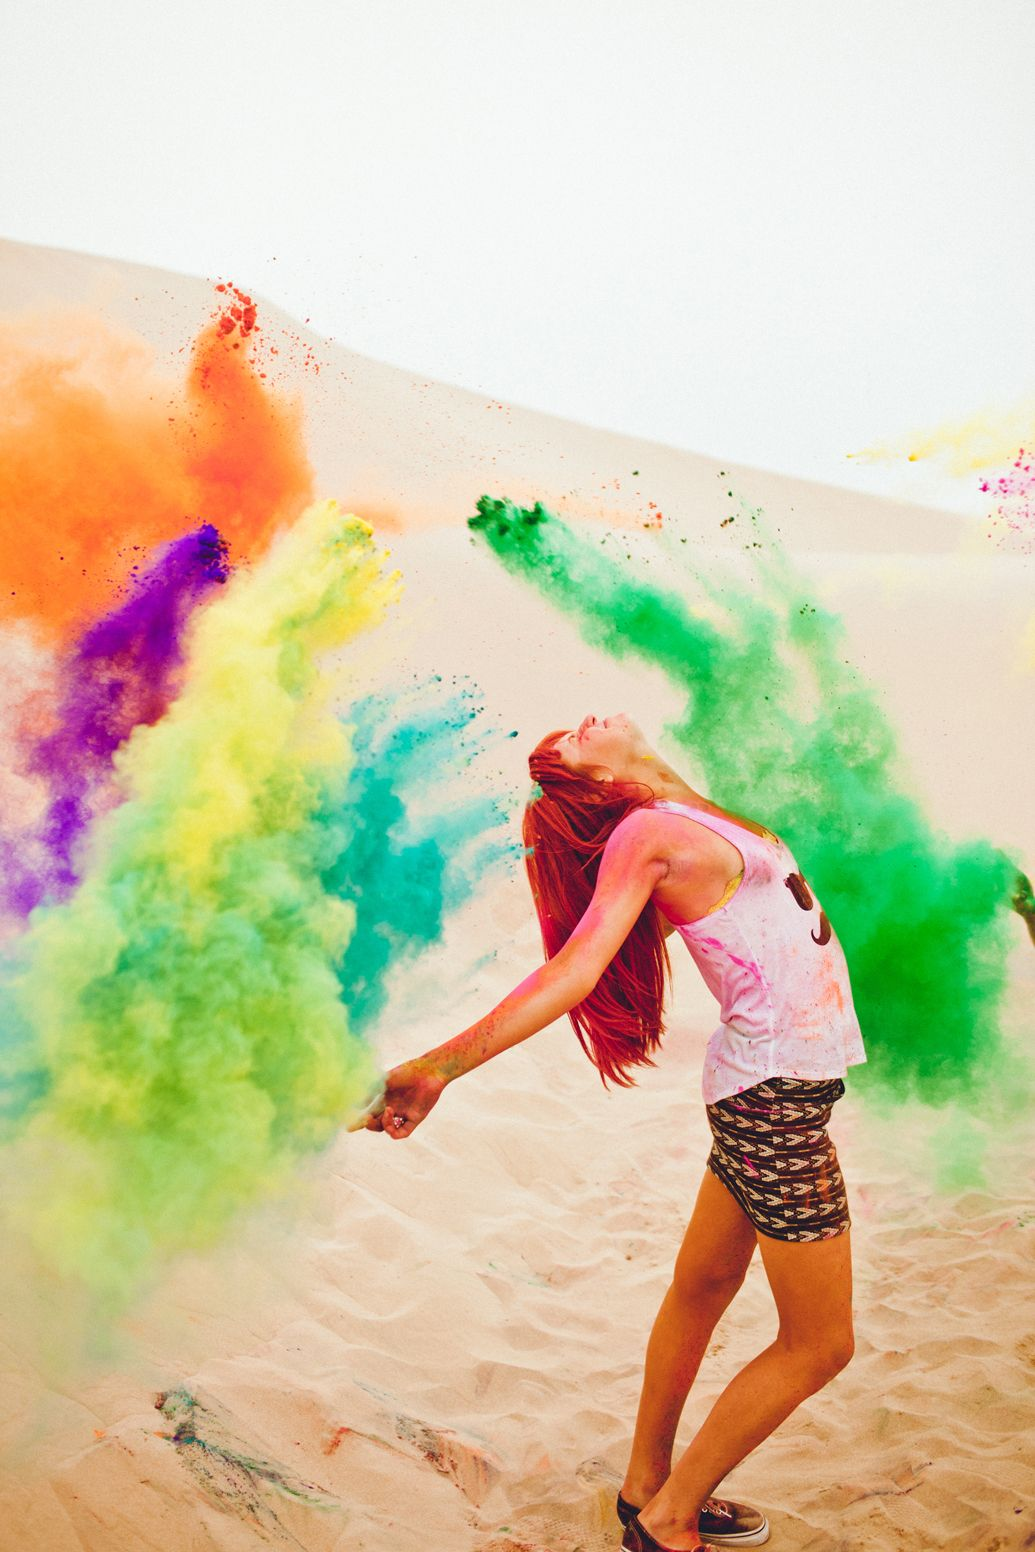 ttd holi festival photography rock the dress h c holi colors holi powder photography. Black Bedroom Furniture Sets. Home Design Ideas